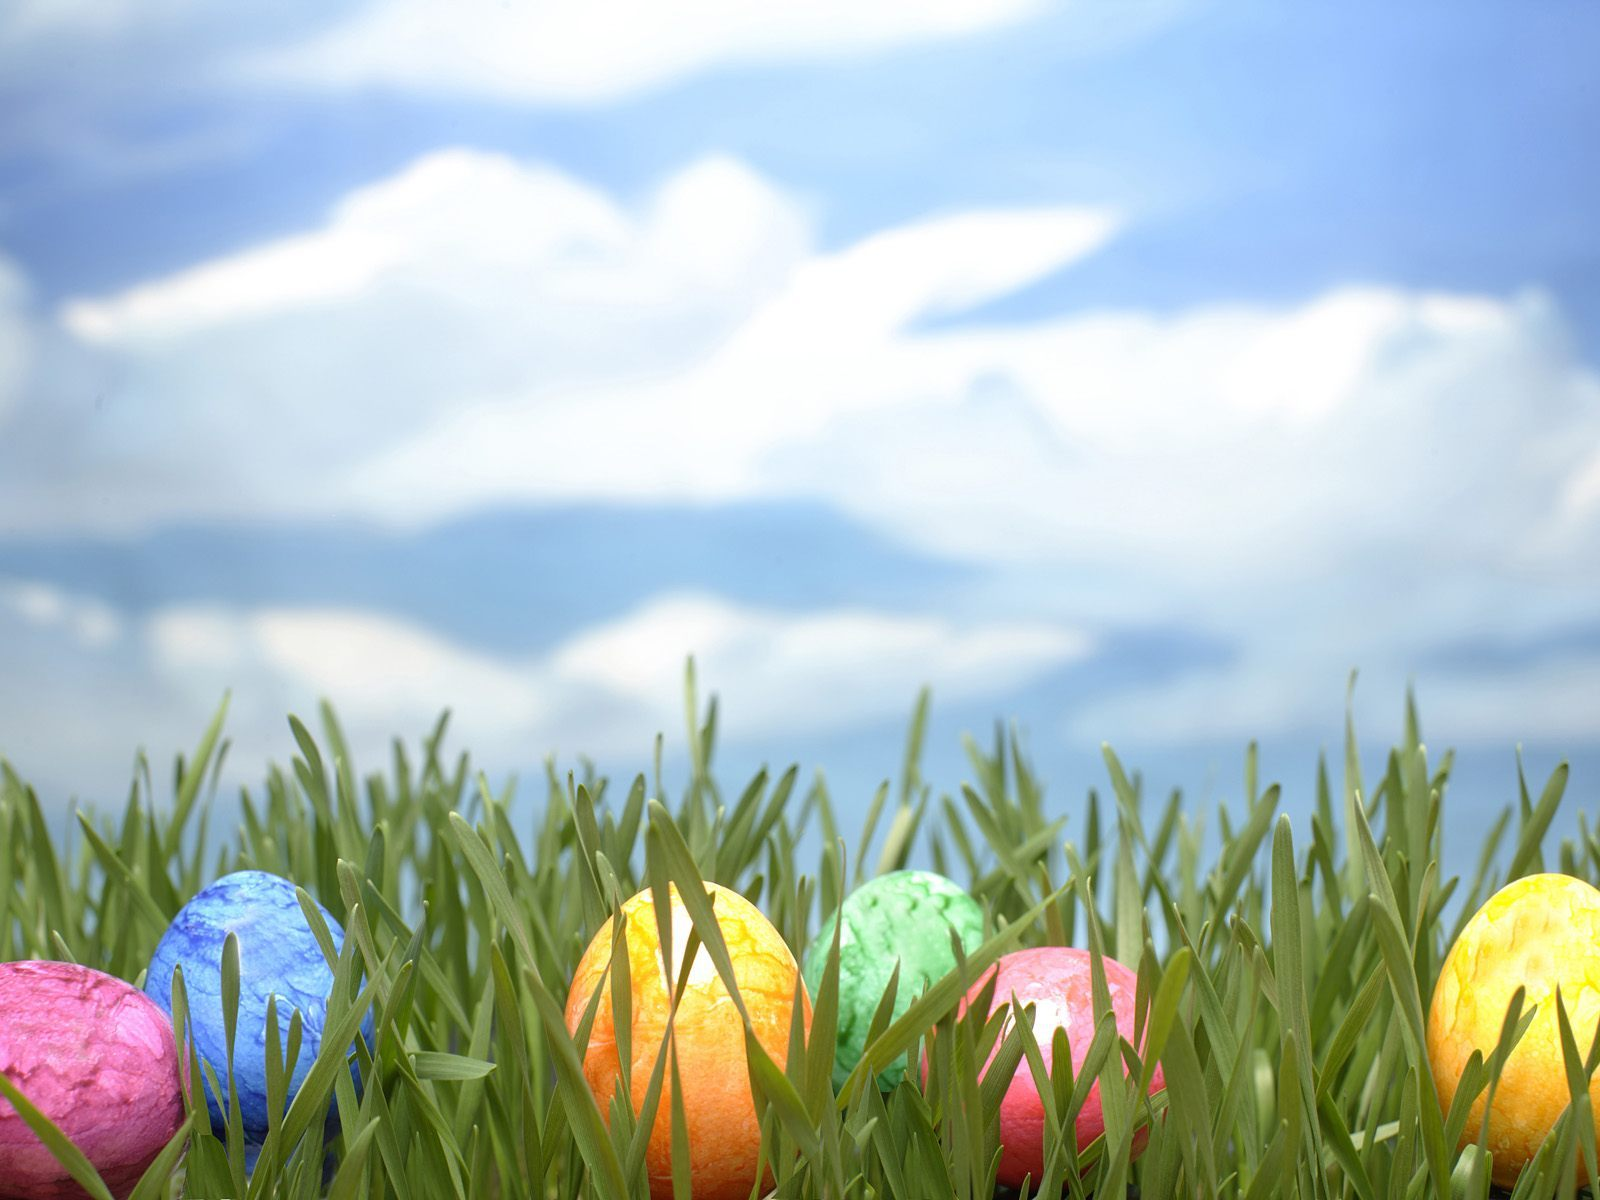 Safe easter wallpaper wallpapersafari - Desktop wallpaper 1600x1200 ...